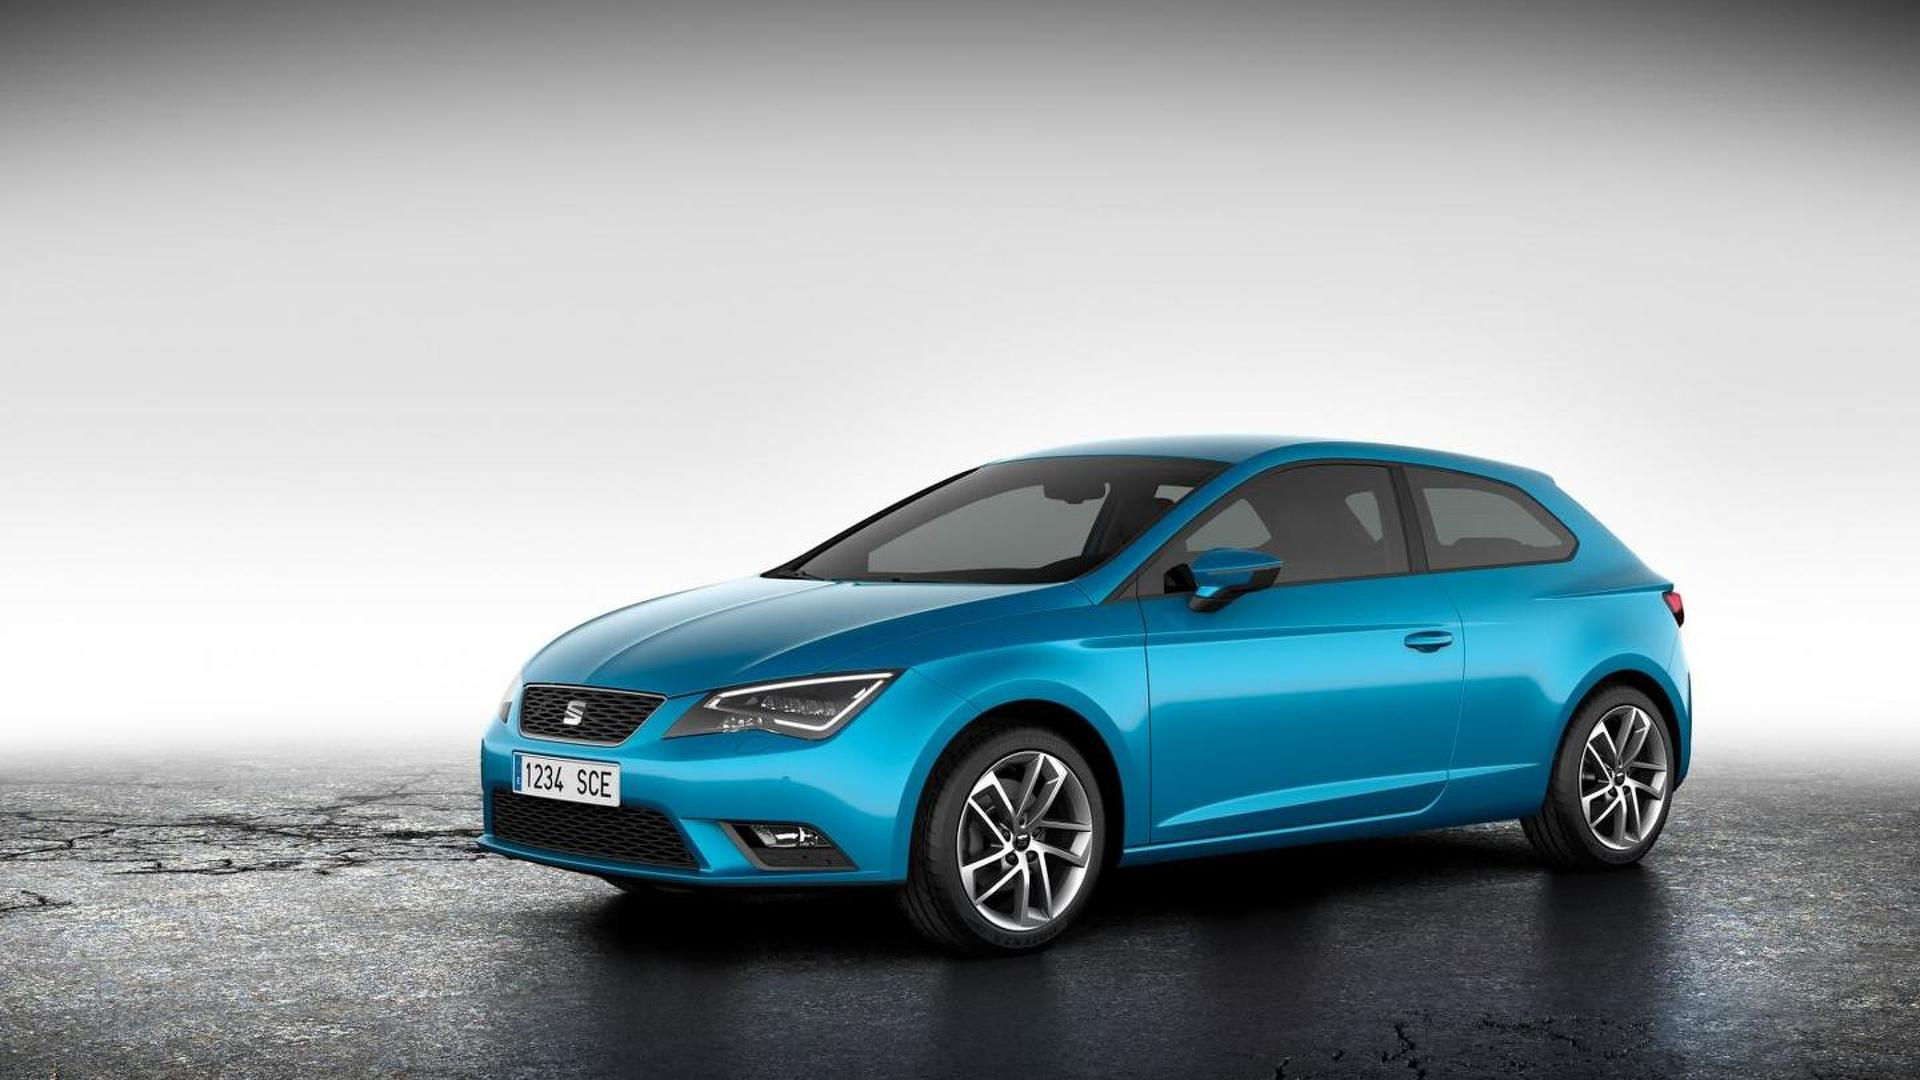 2014 Seat Leon Cupra could have up to 261 bhp - report